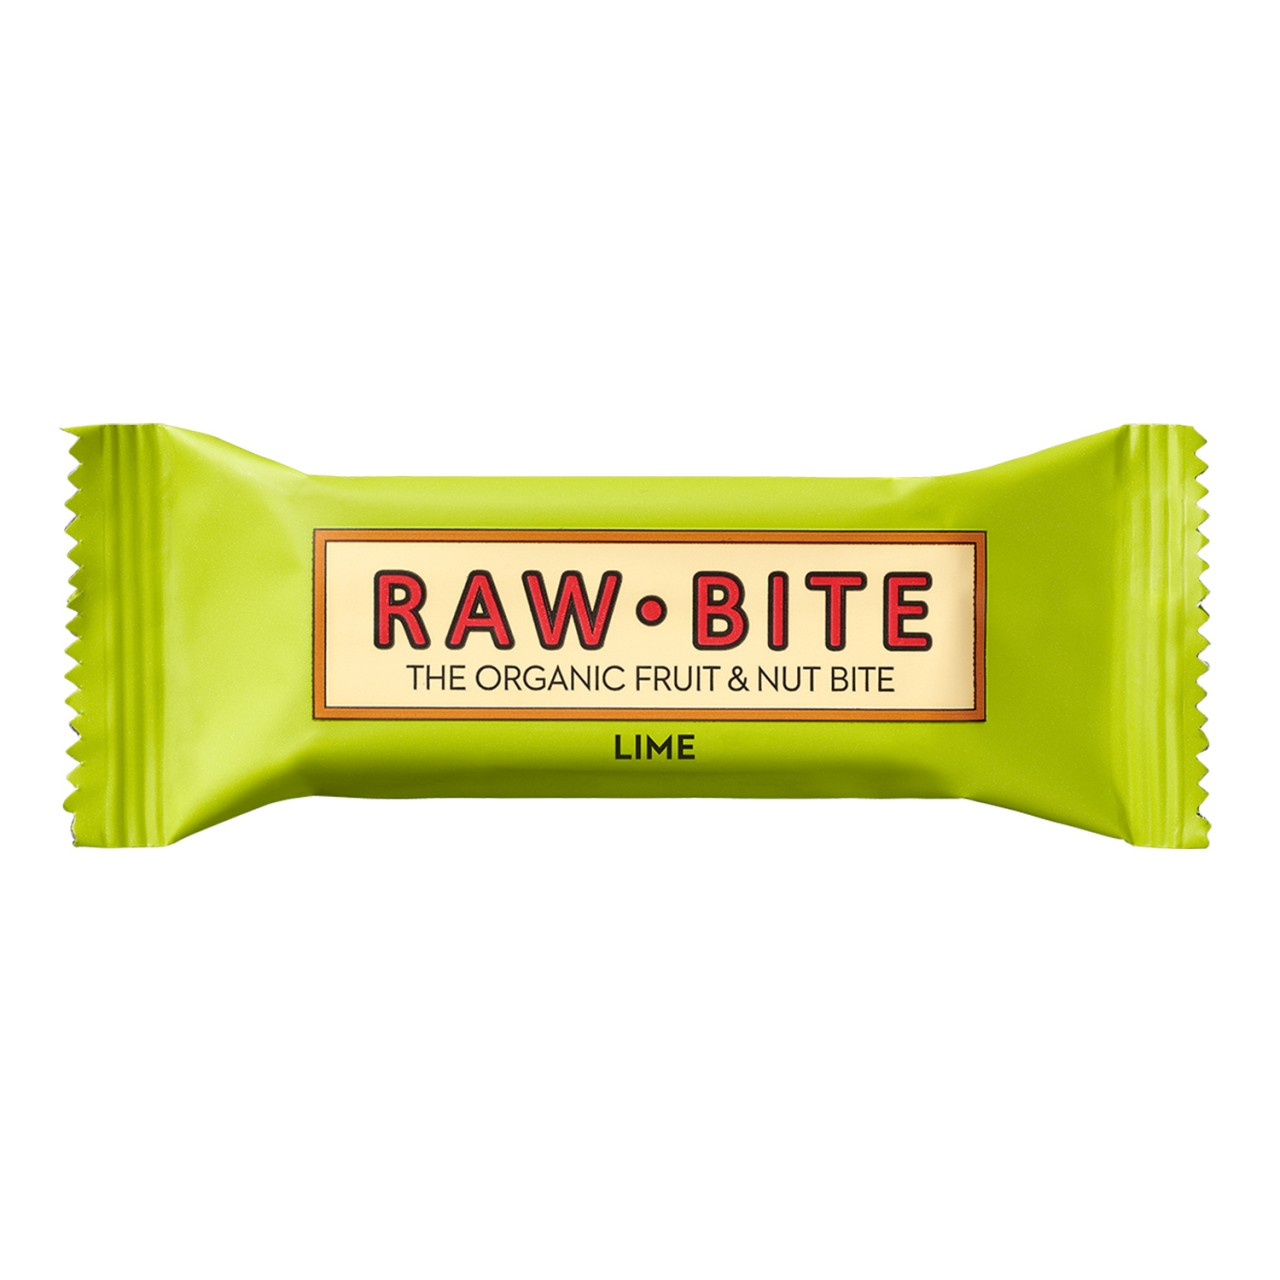 RAW BITE Bio LIME Riegel, 50g von RAWBITE